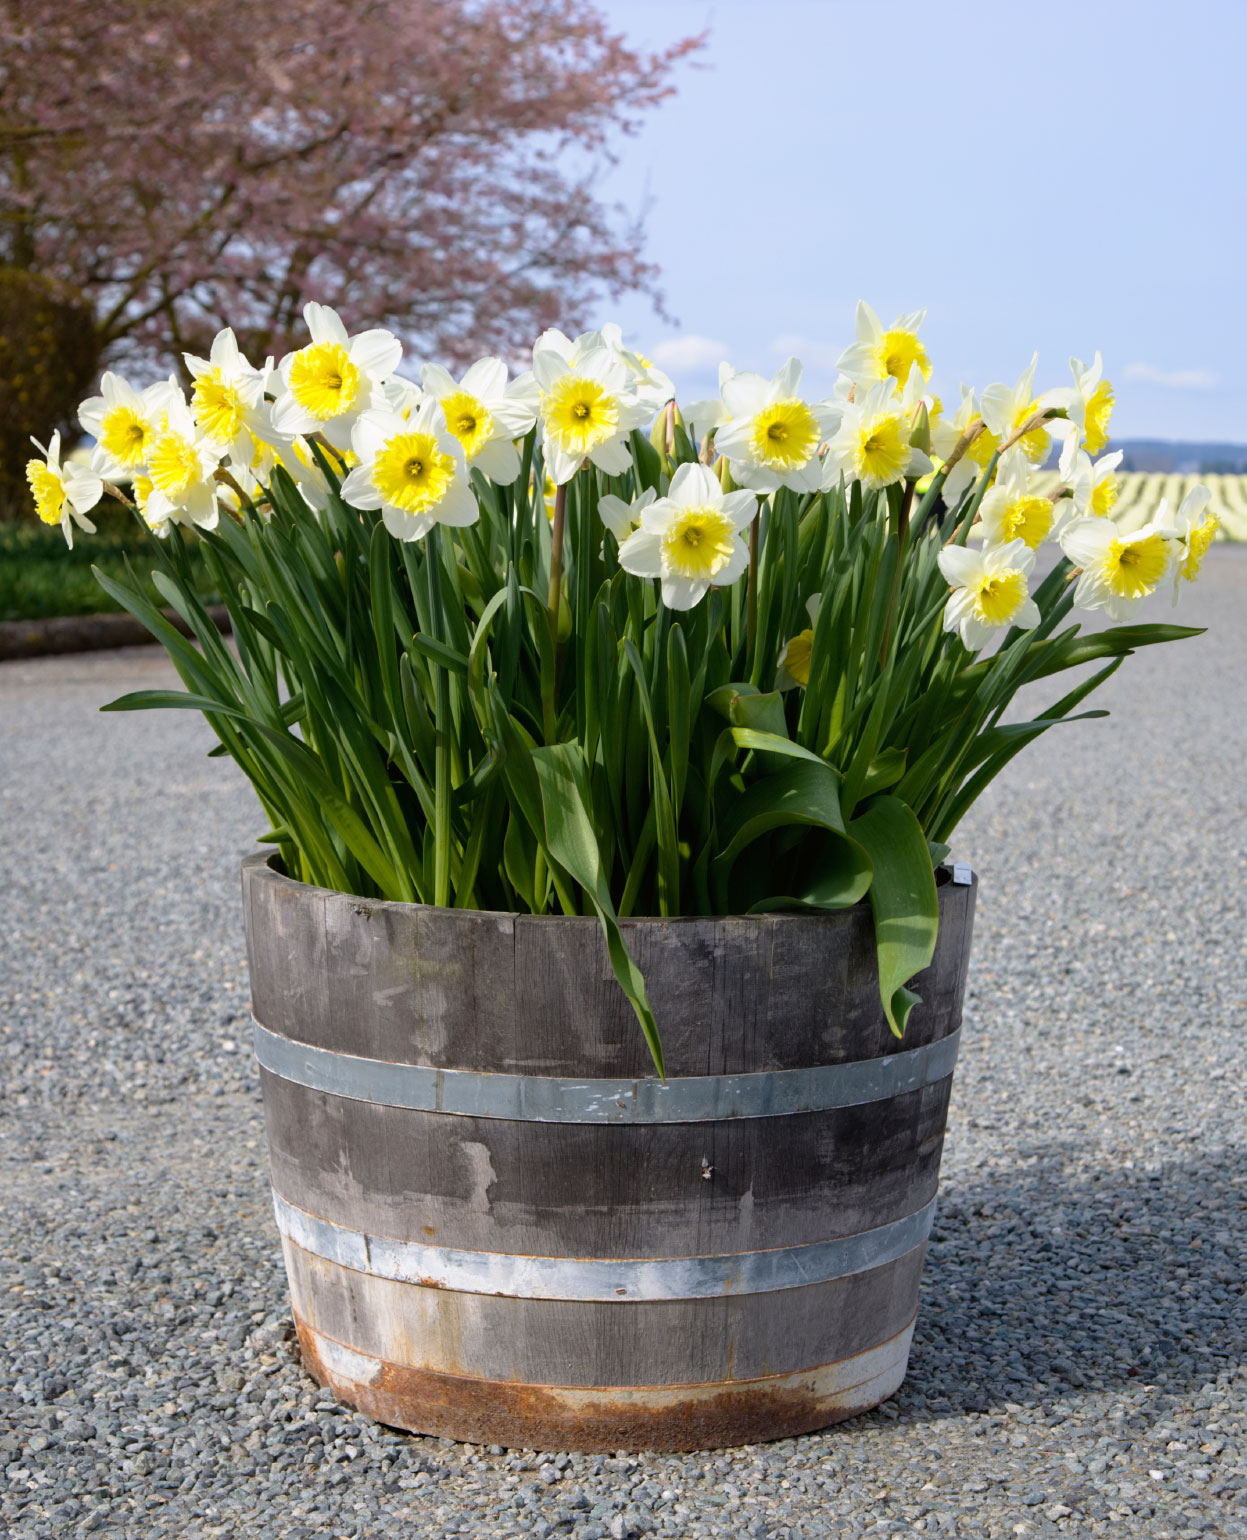 Chill period for bulbs tips for chilling flower bulbs mightylinksfo